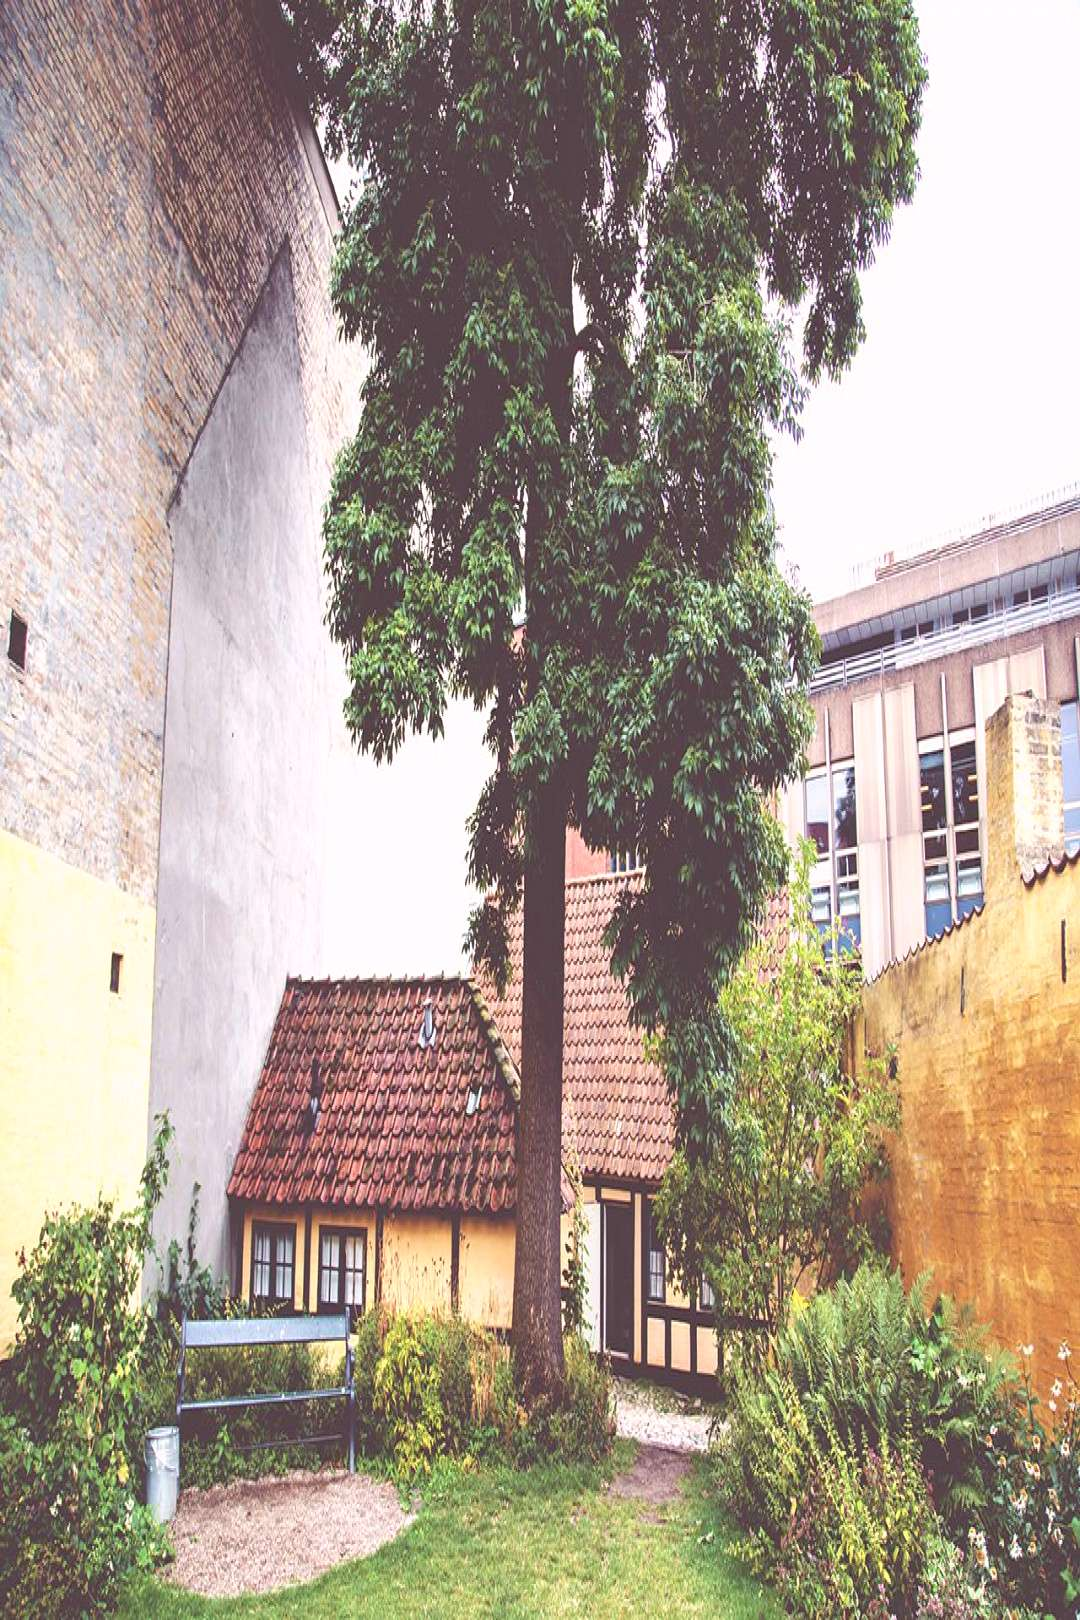 Exploring odense with my familythe place hans christian andersen lived inlooks lik... -